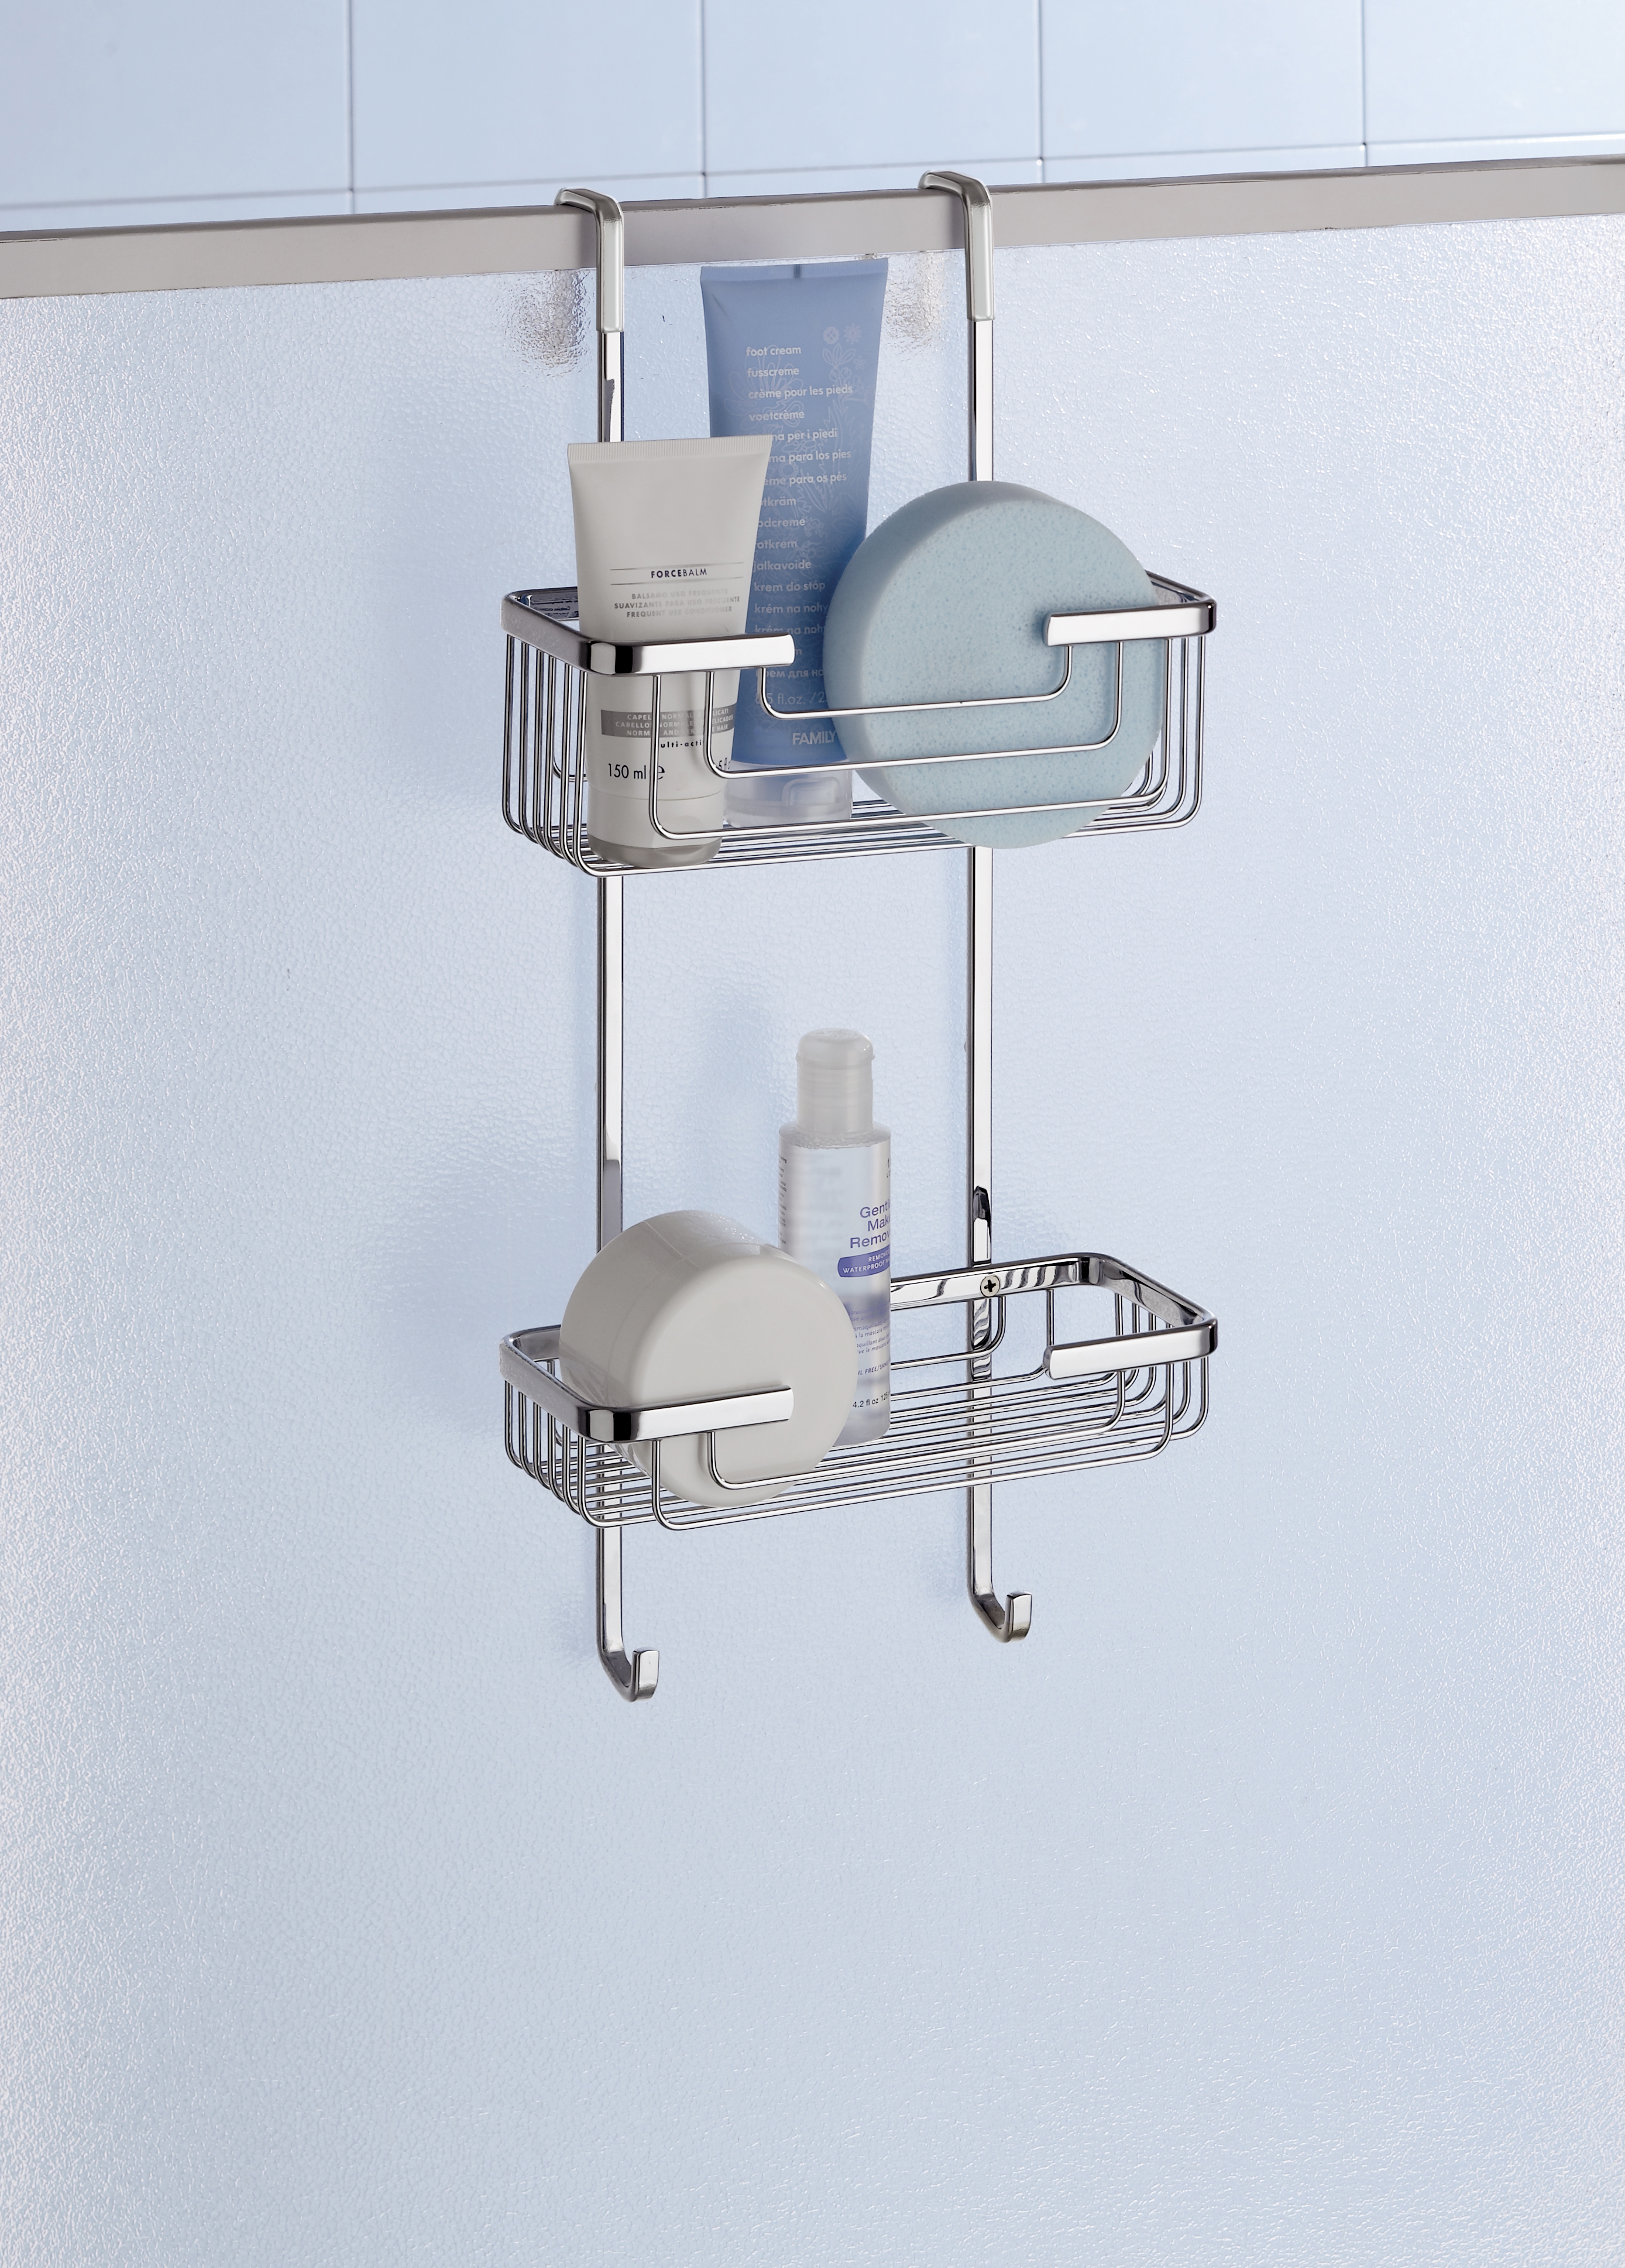 Deluxe 2 Tier Overdoor Hanging Shower Cubicle Tidy - Notjusttaps.co.uk